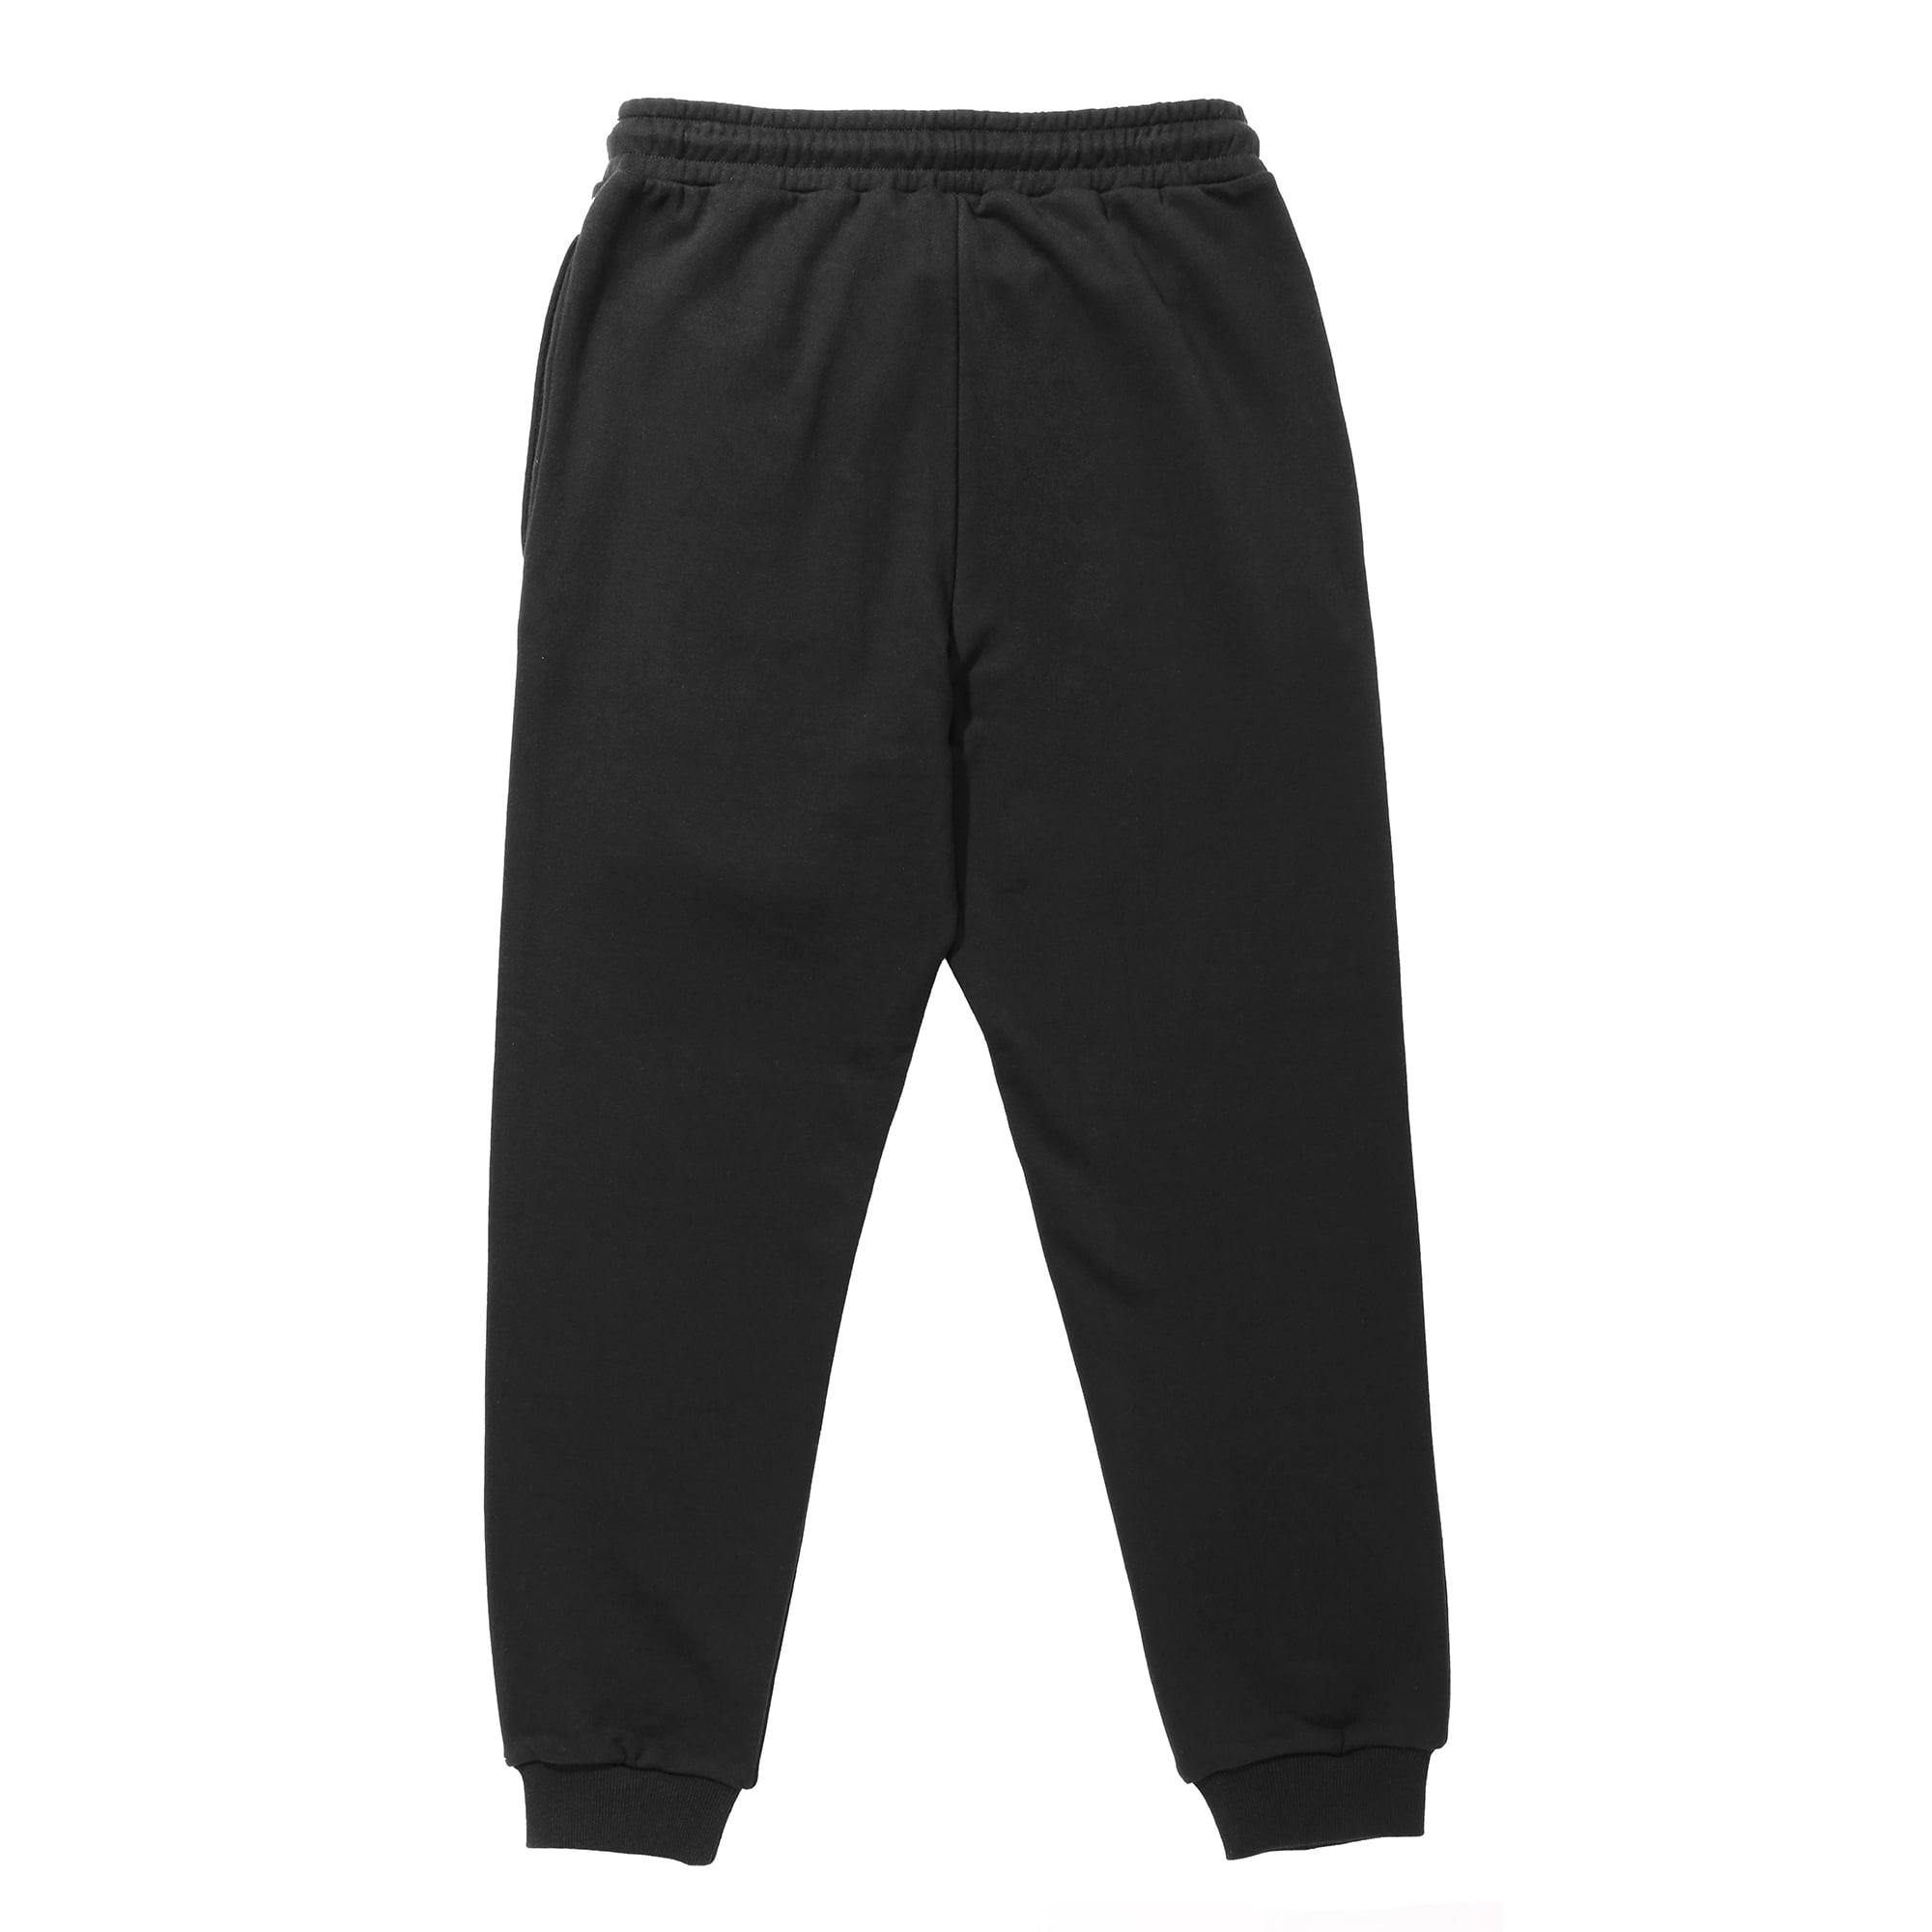 19FW MM Jogger Pants MYFBH4605